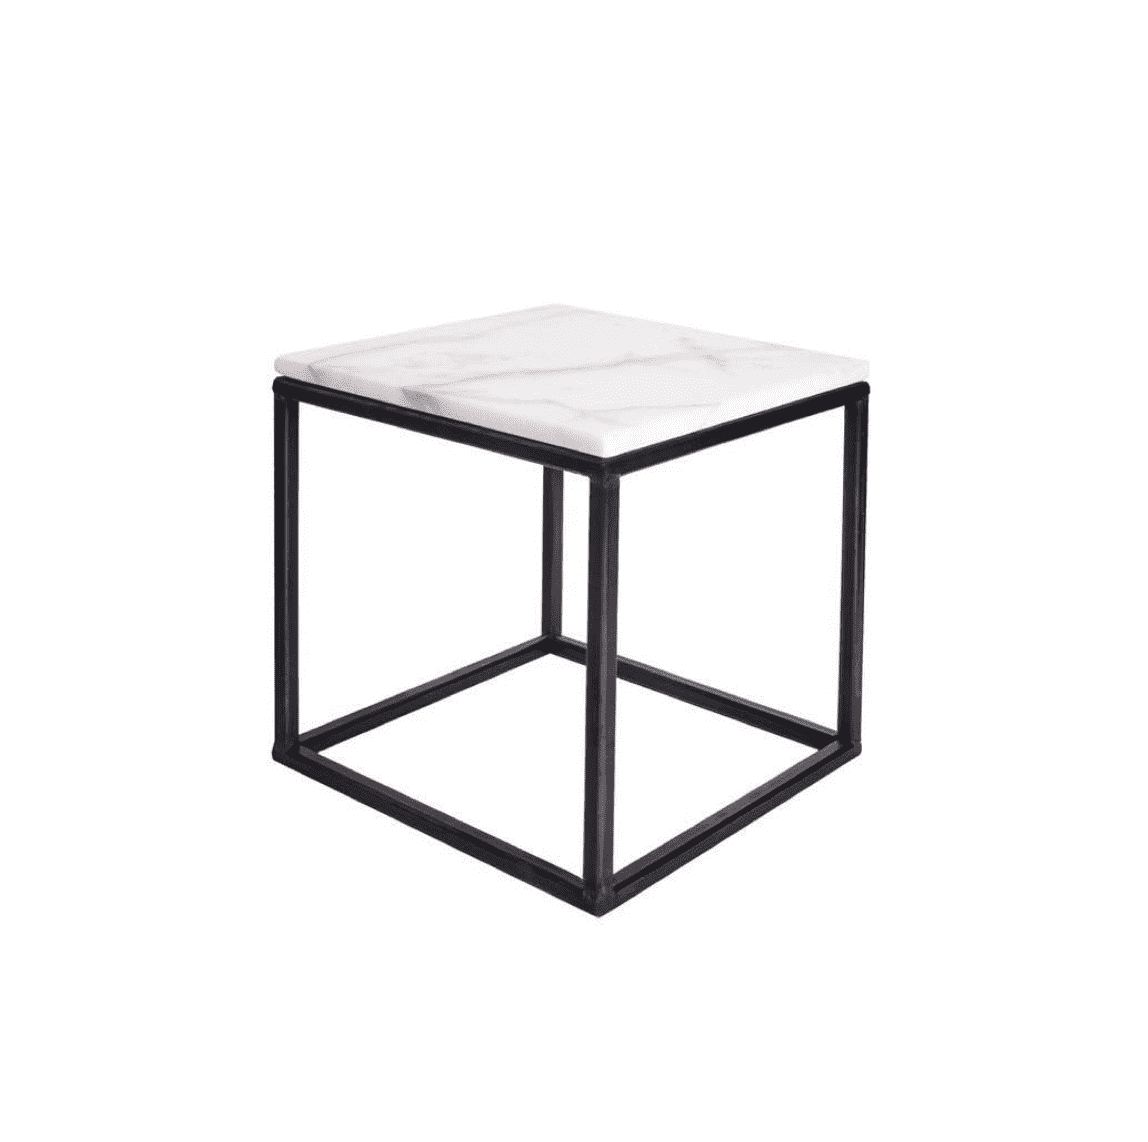 Marble side table white 30x30